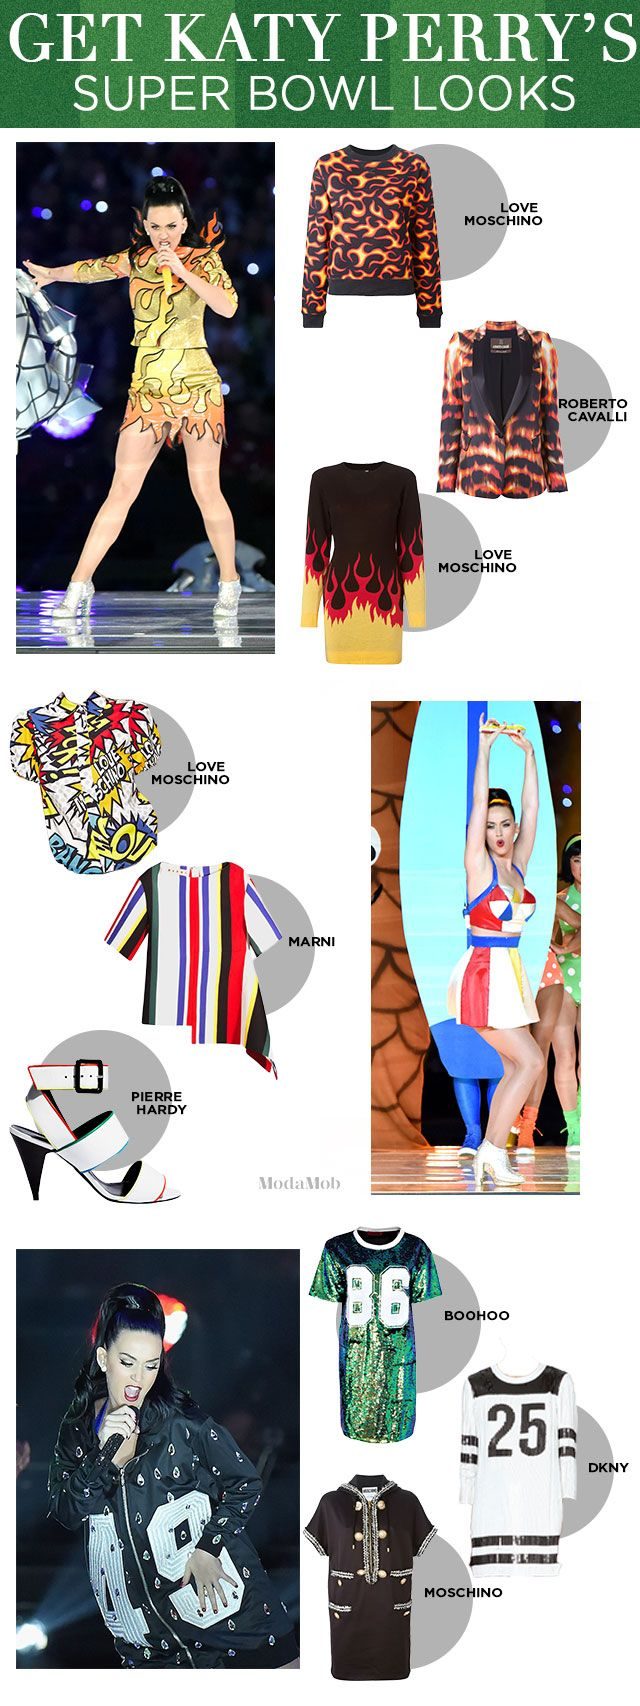 Did Katy Perry's Super Bowl Outfits Put Anyone Else in the Mood to Shop? |#katyperry #lookforless #superbowl